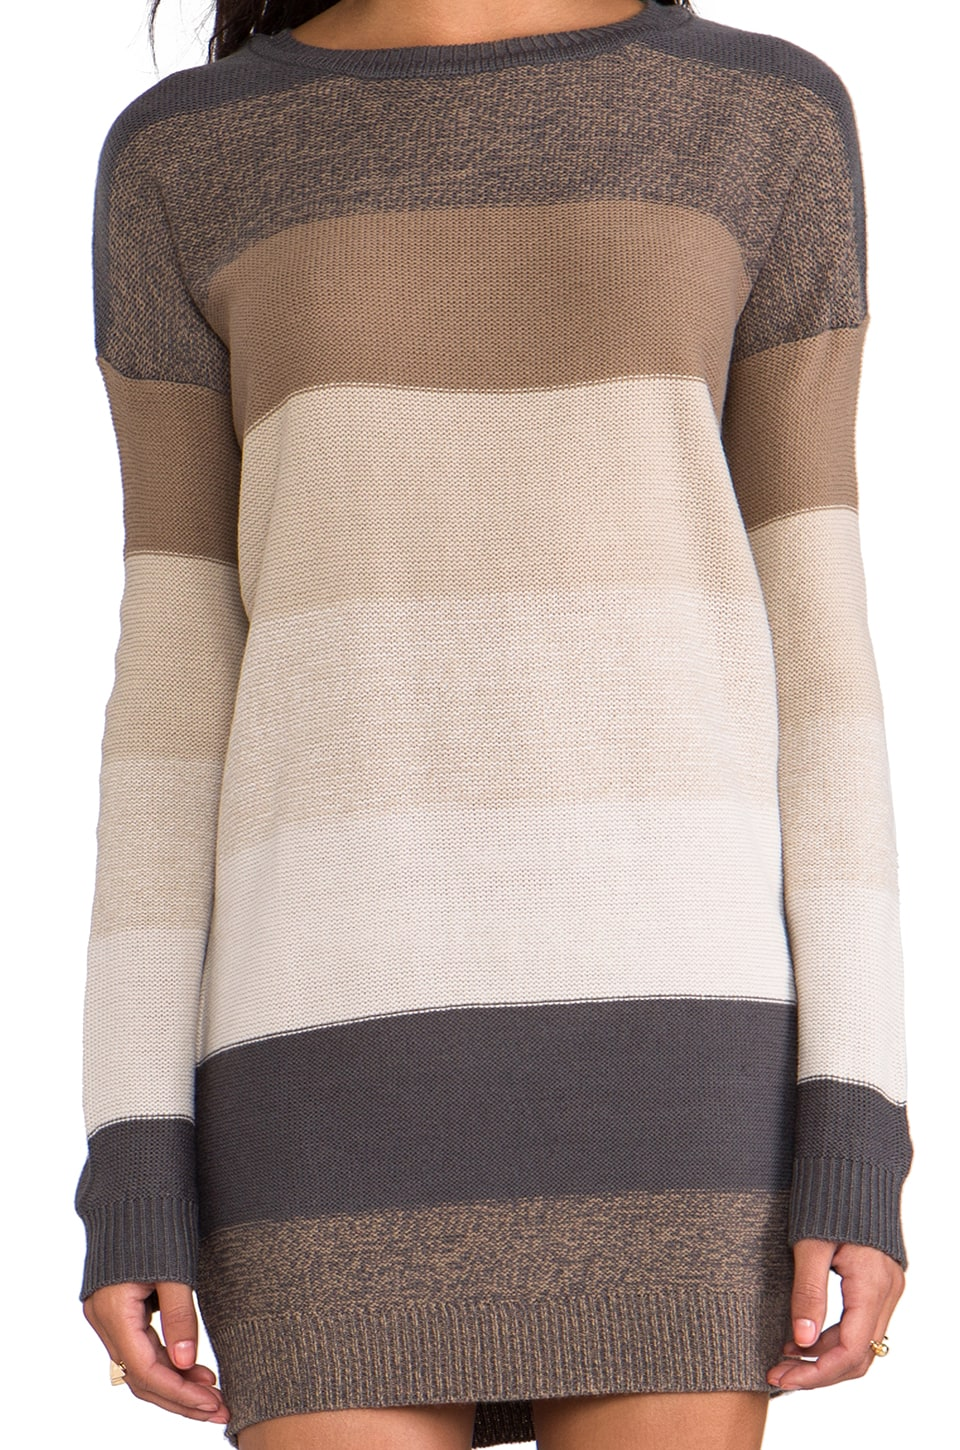 BB Dakota Marilou Pullover Sweater in Dark Khaki